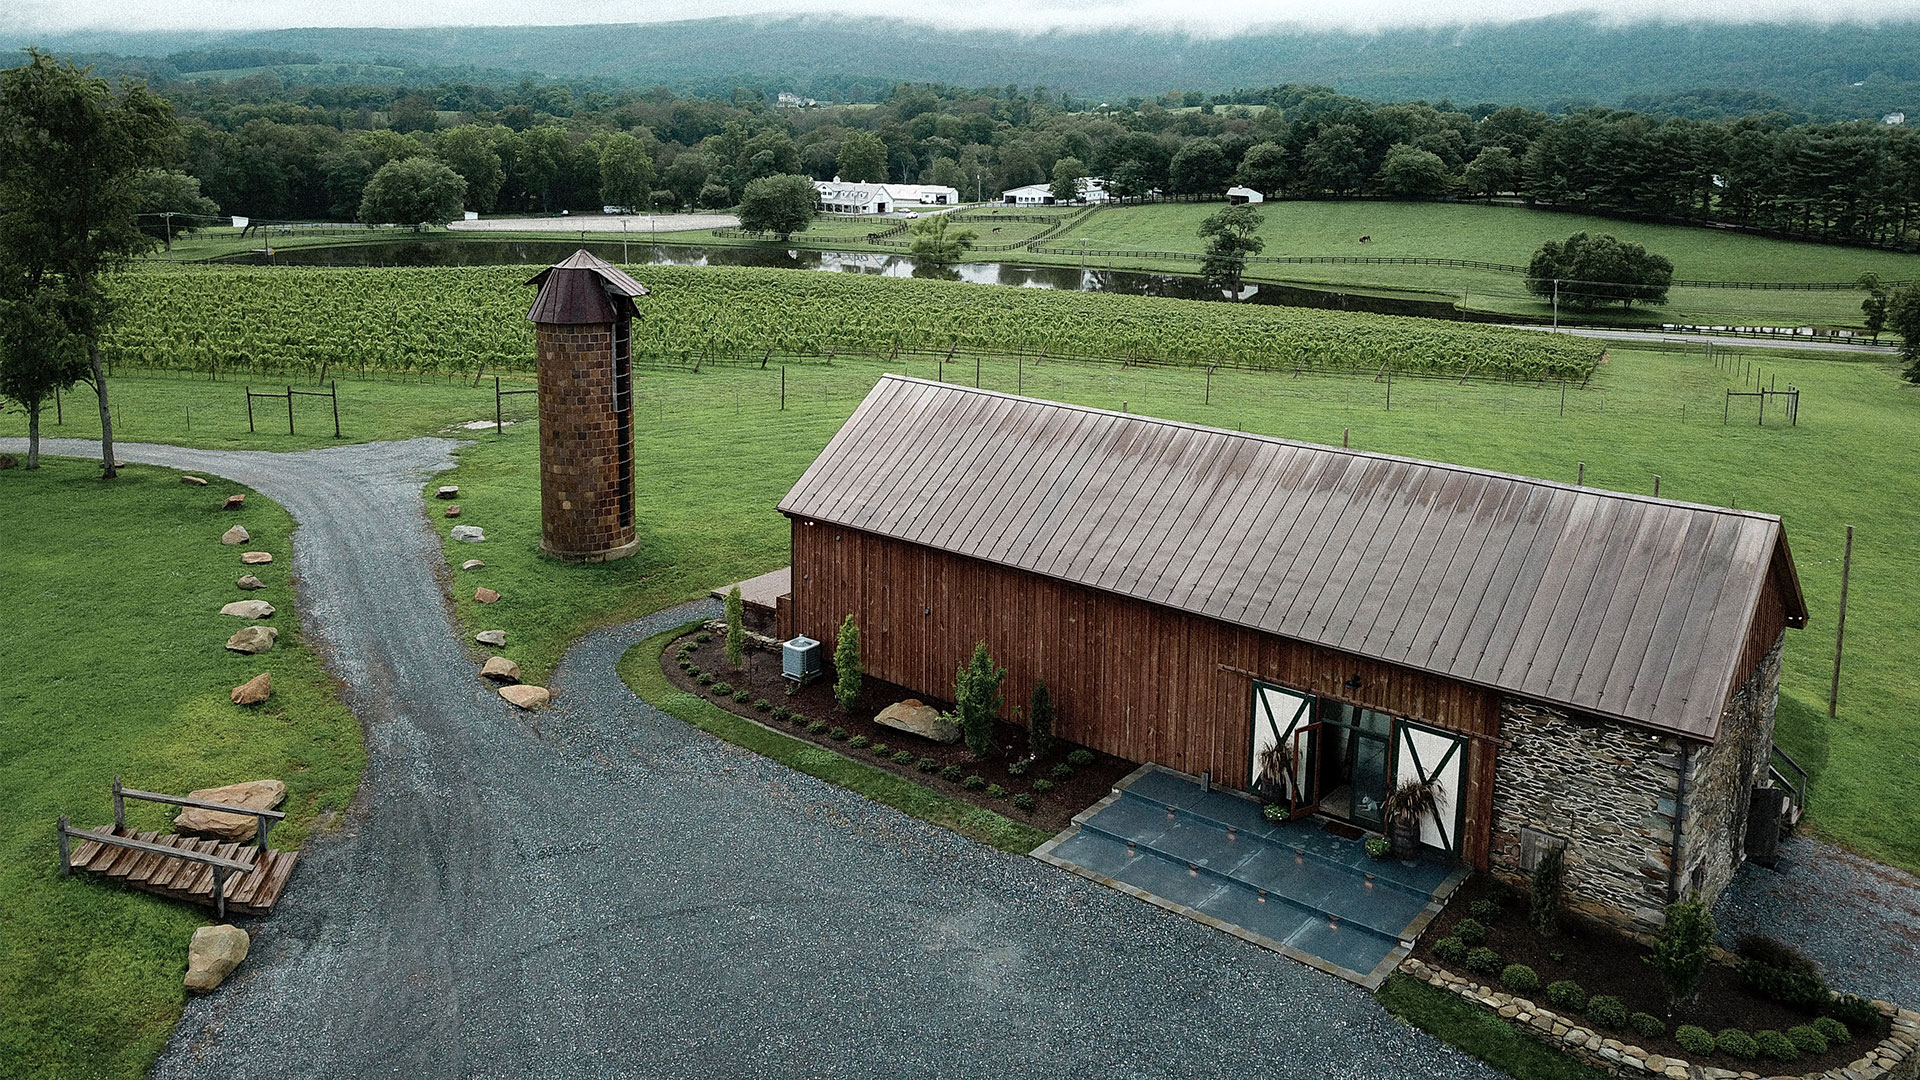 arial view of barn and farm